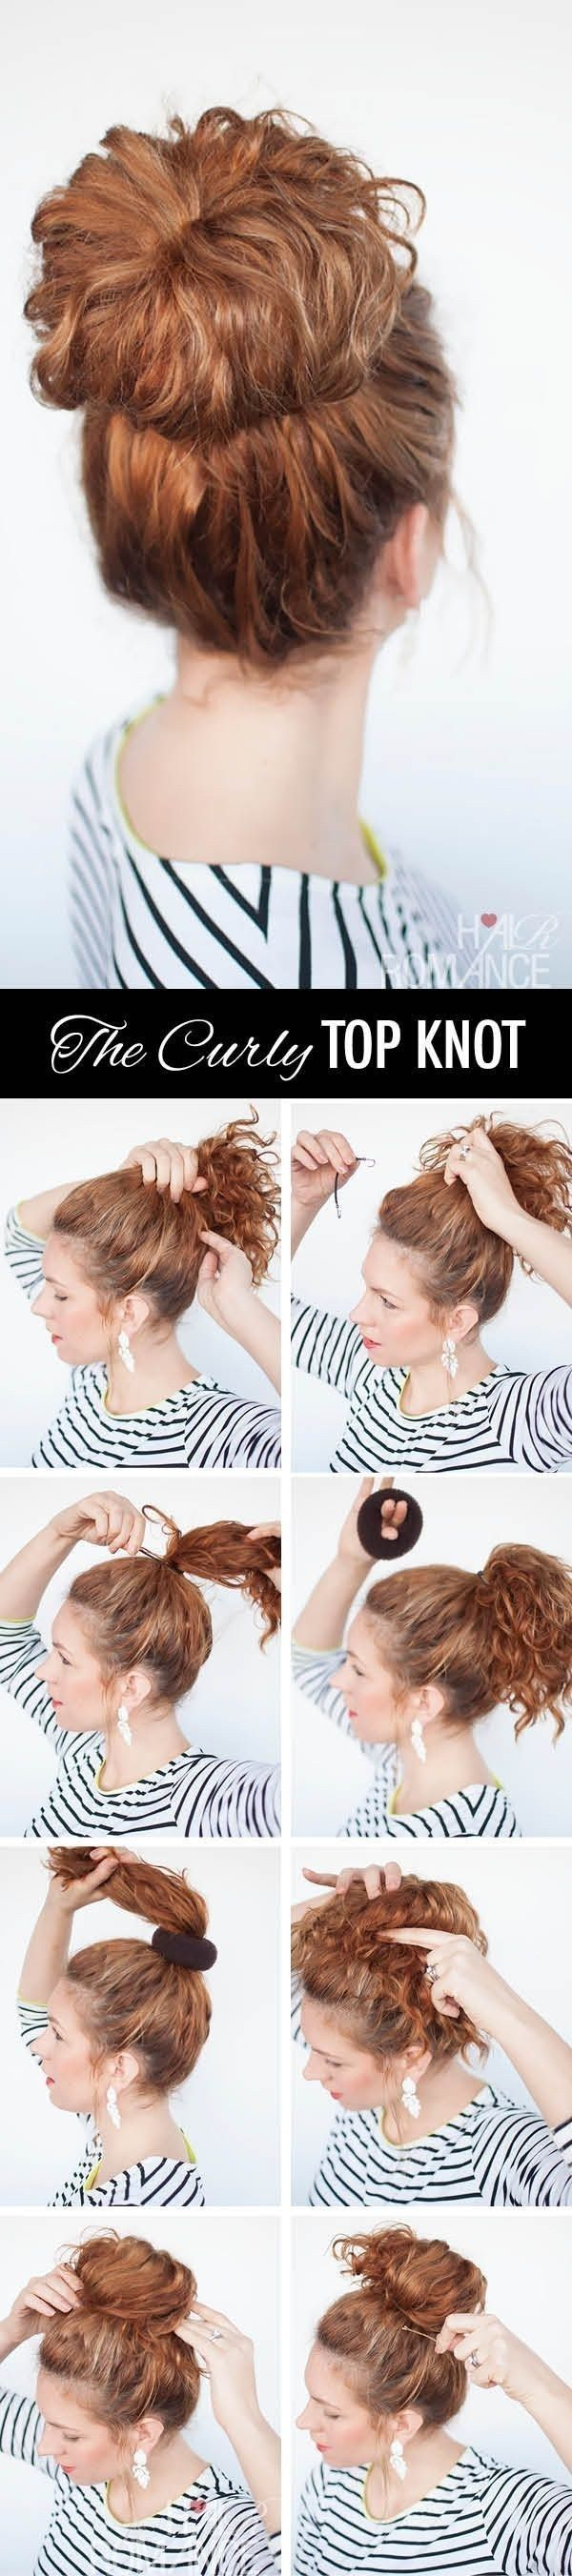 Best 25 updos for curly hair ideas on pinterest twisted updo 50 simple five minute hairstyles for office women diy solutioingenieria Choice Image